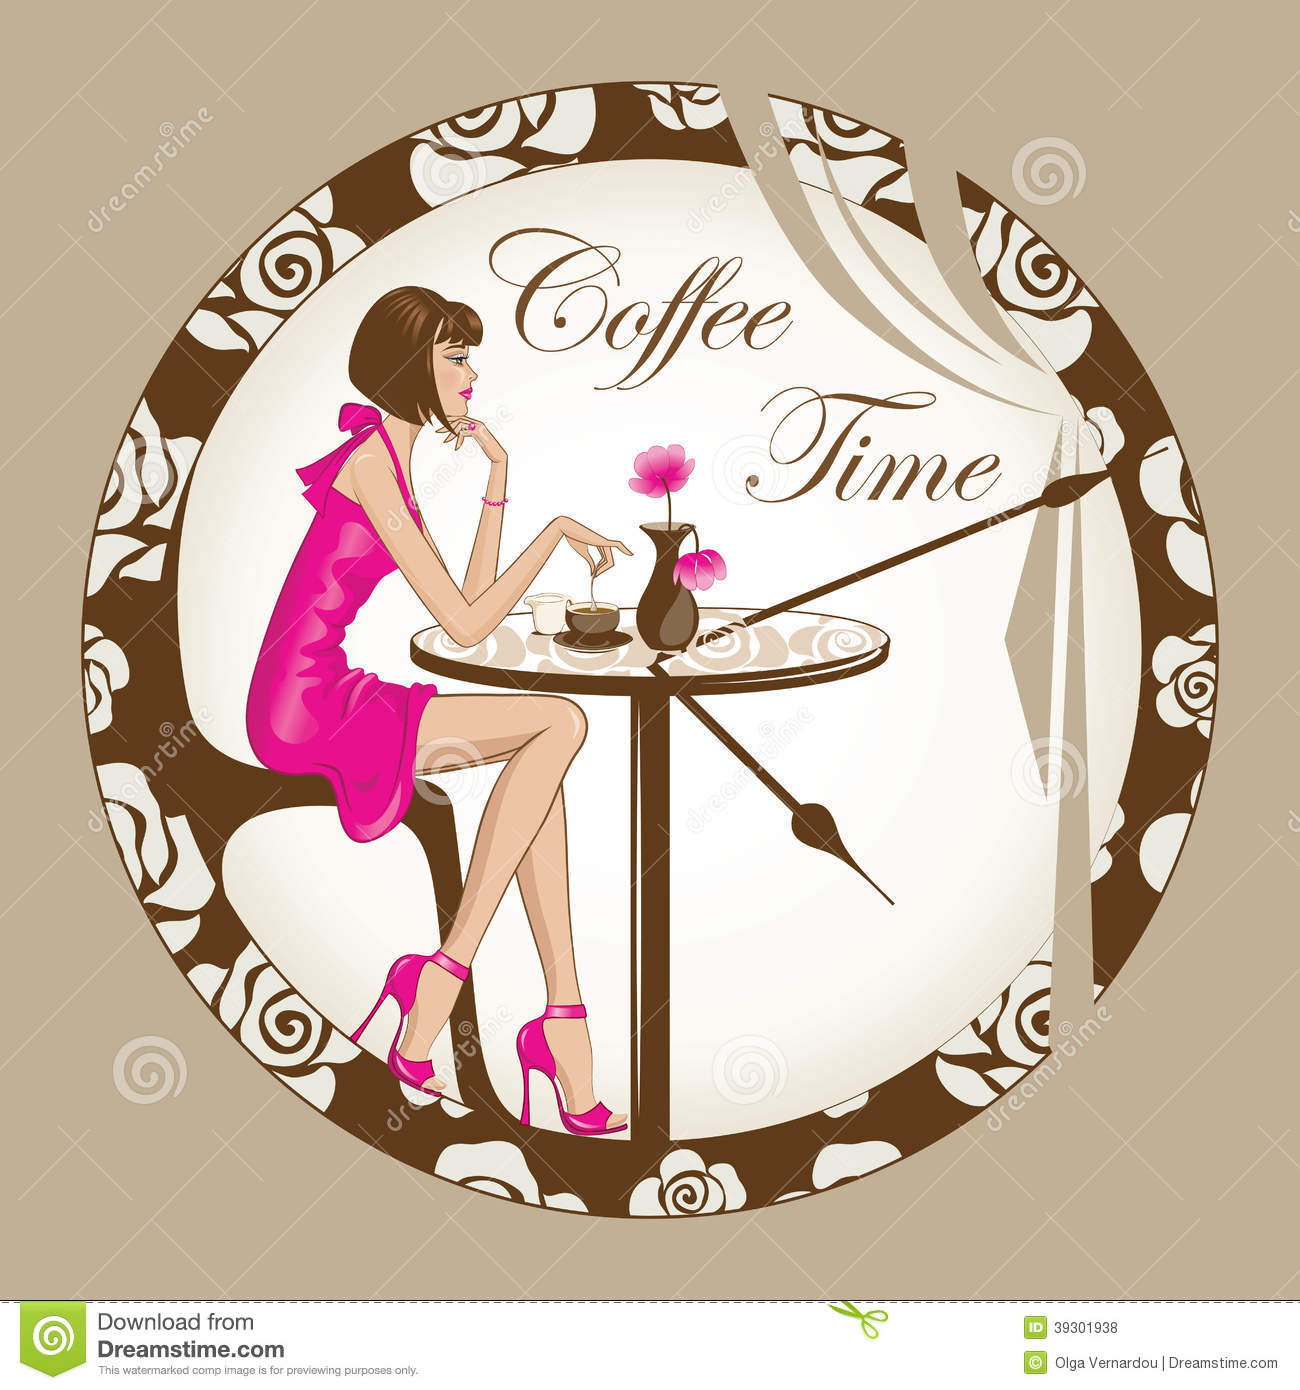 clipart coffee time - photo #18